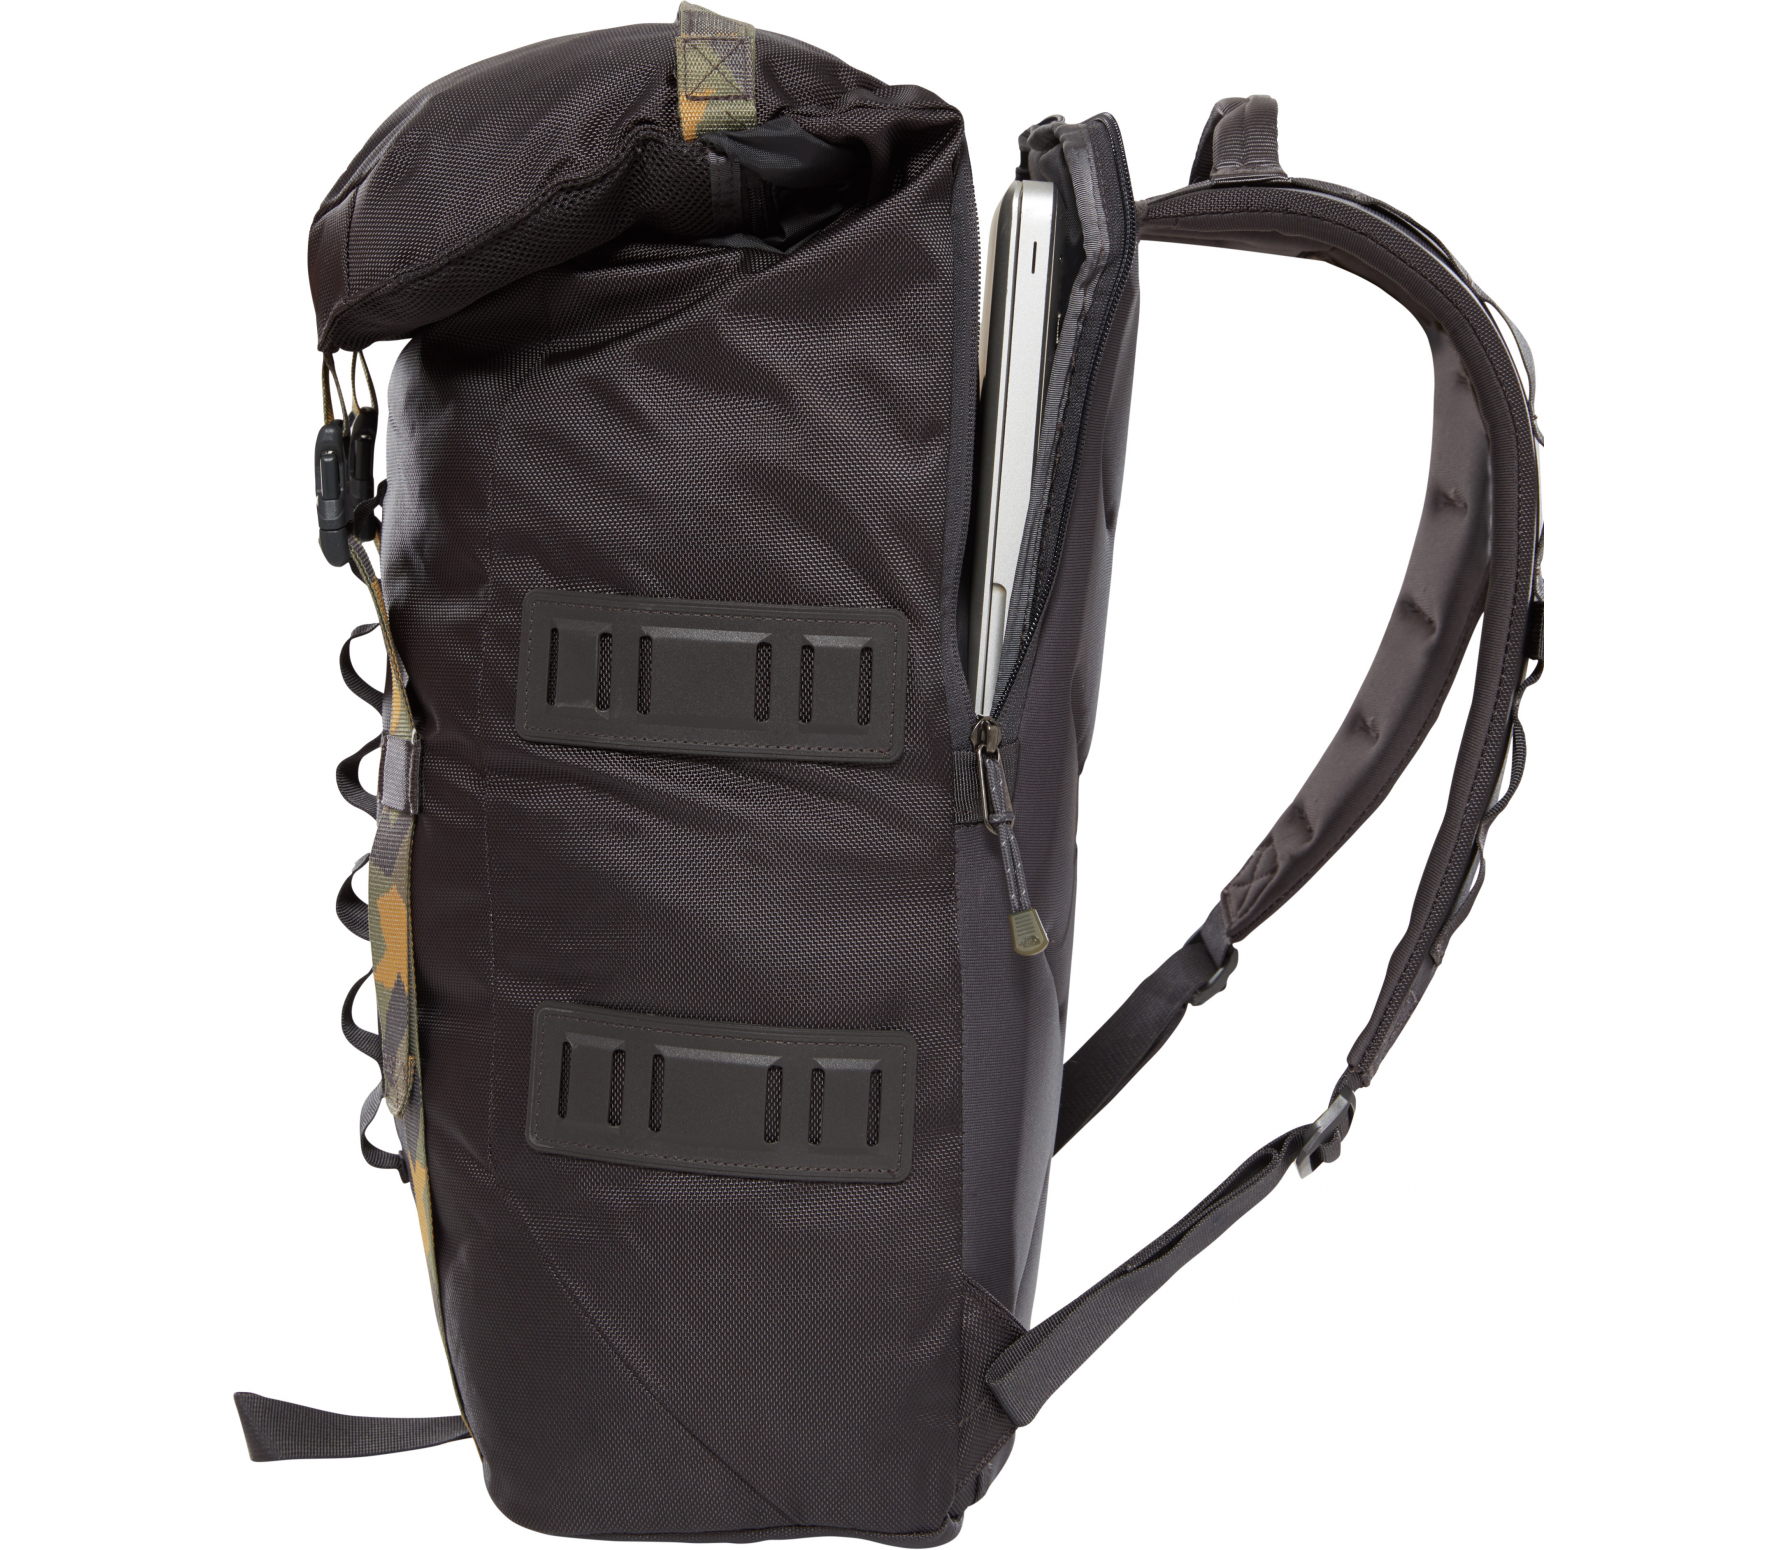 c4edcd7a4 The North Face Lineage Ruck 37 L Daypack Unisex silver